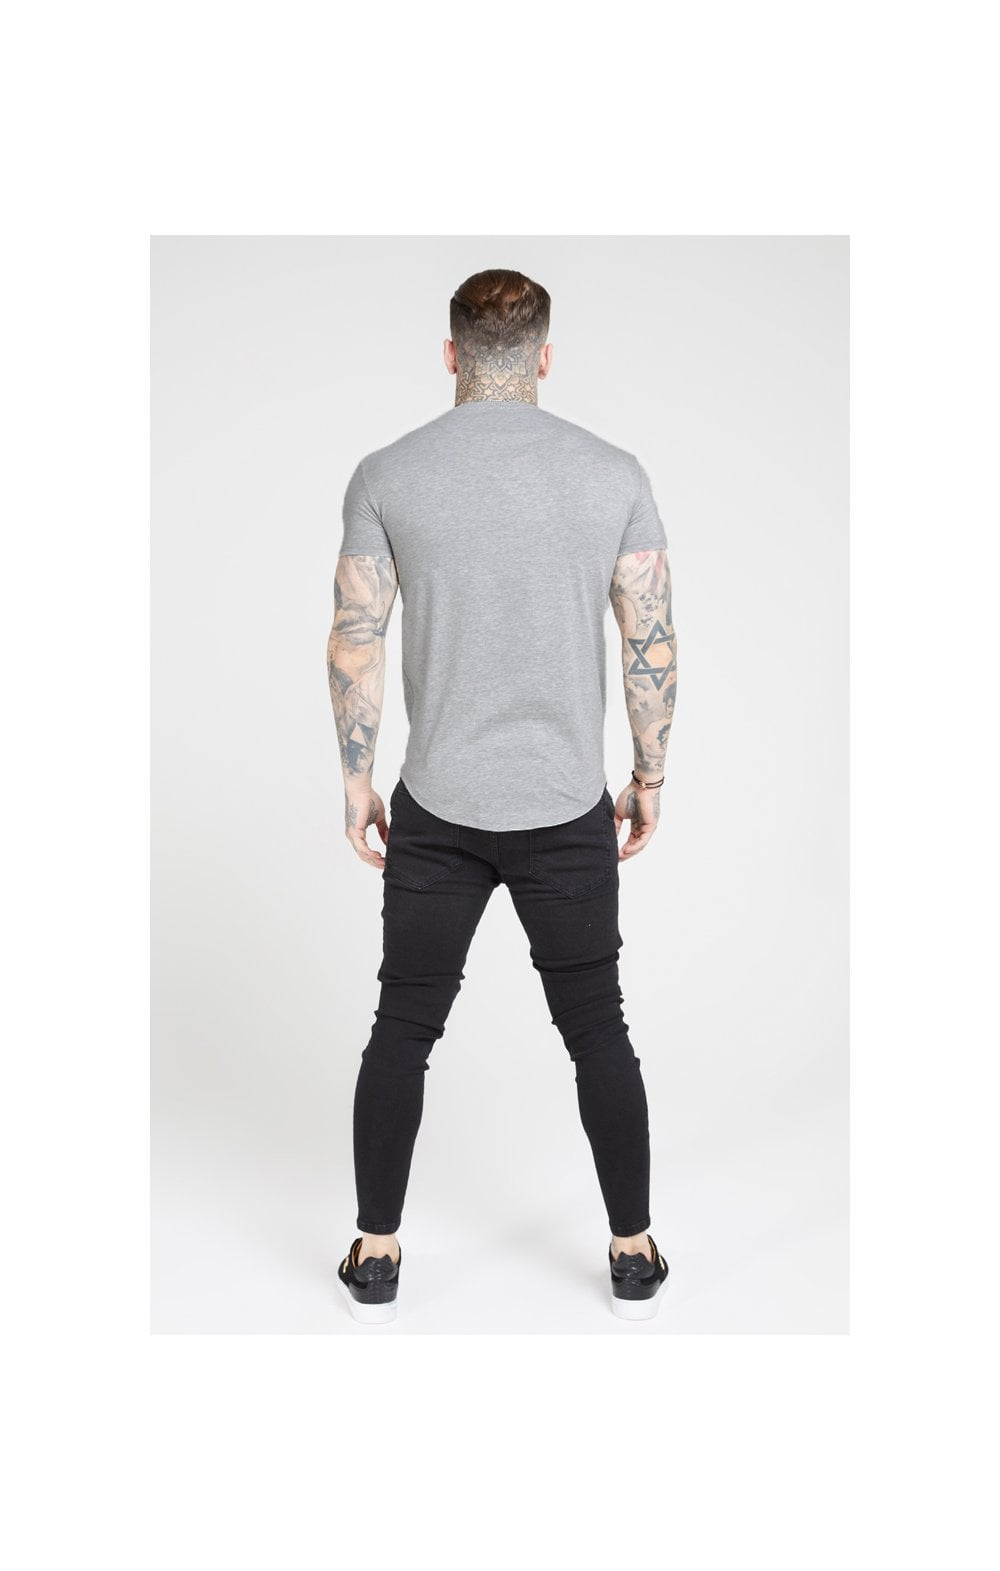 SikSilk Core T-Shirt de Gym à Manches Courtes - Marne Gris (4)